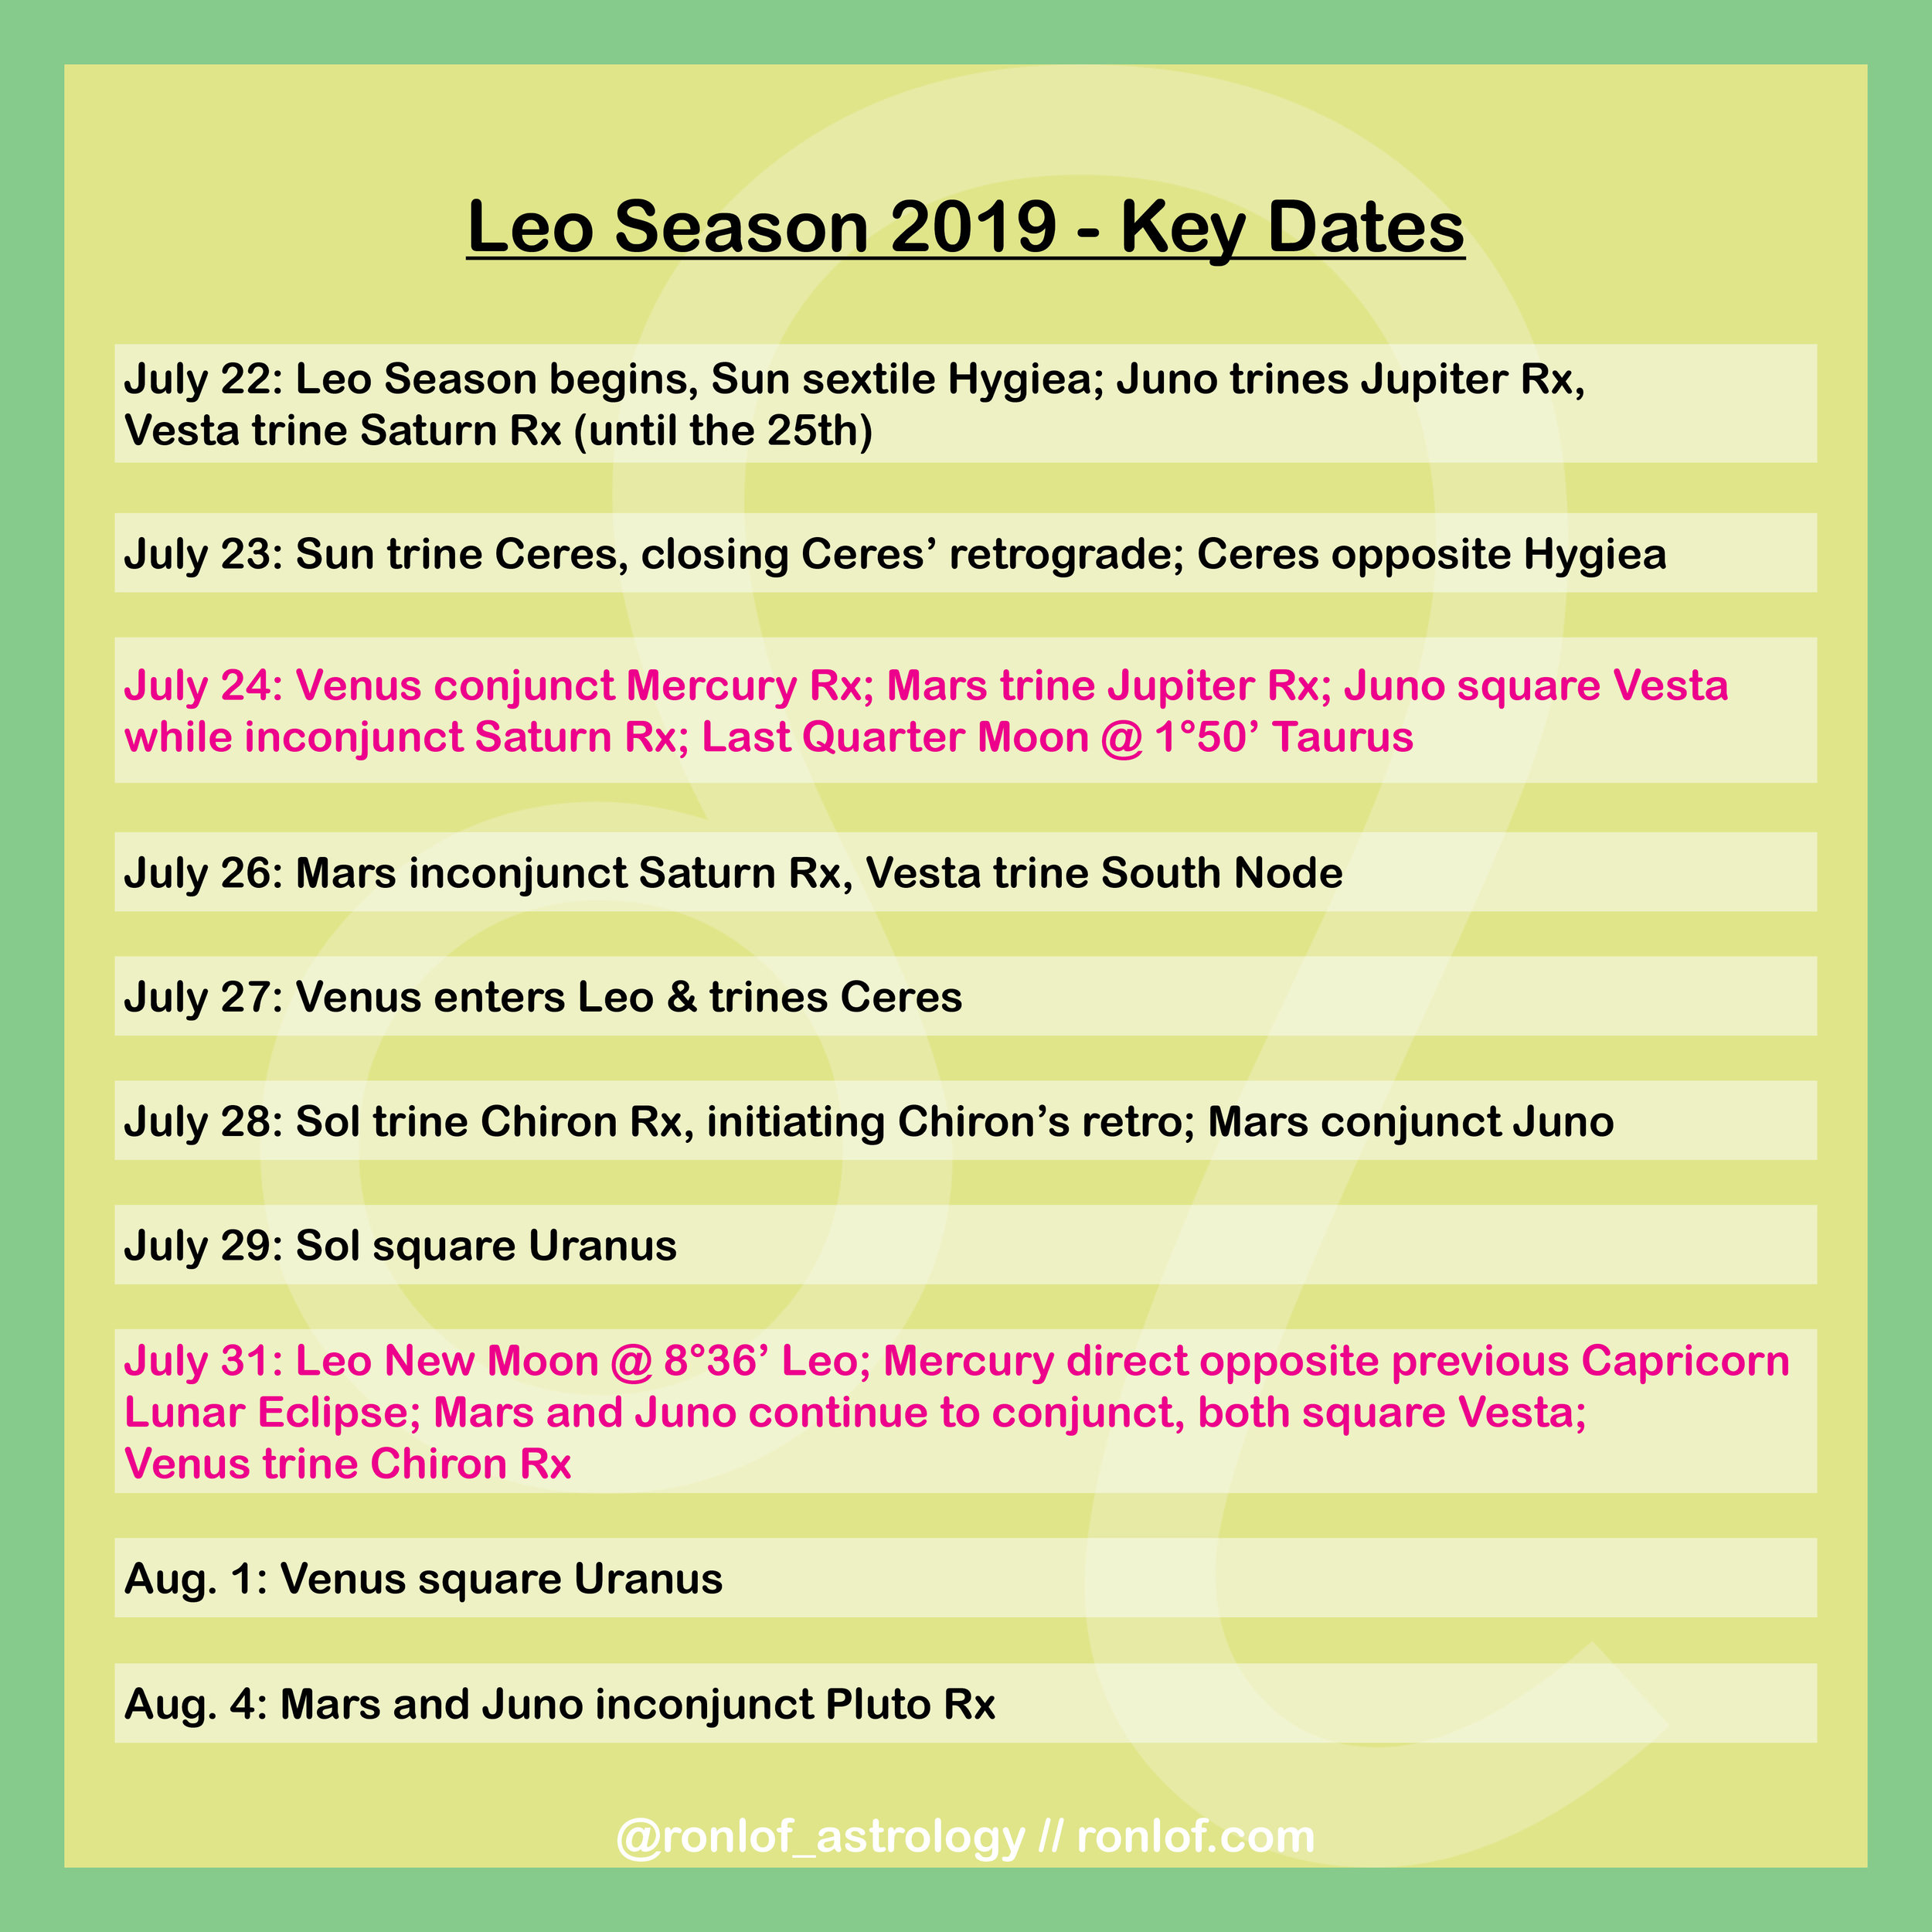 Leo Season Key Dates.jpg